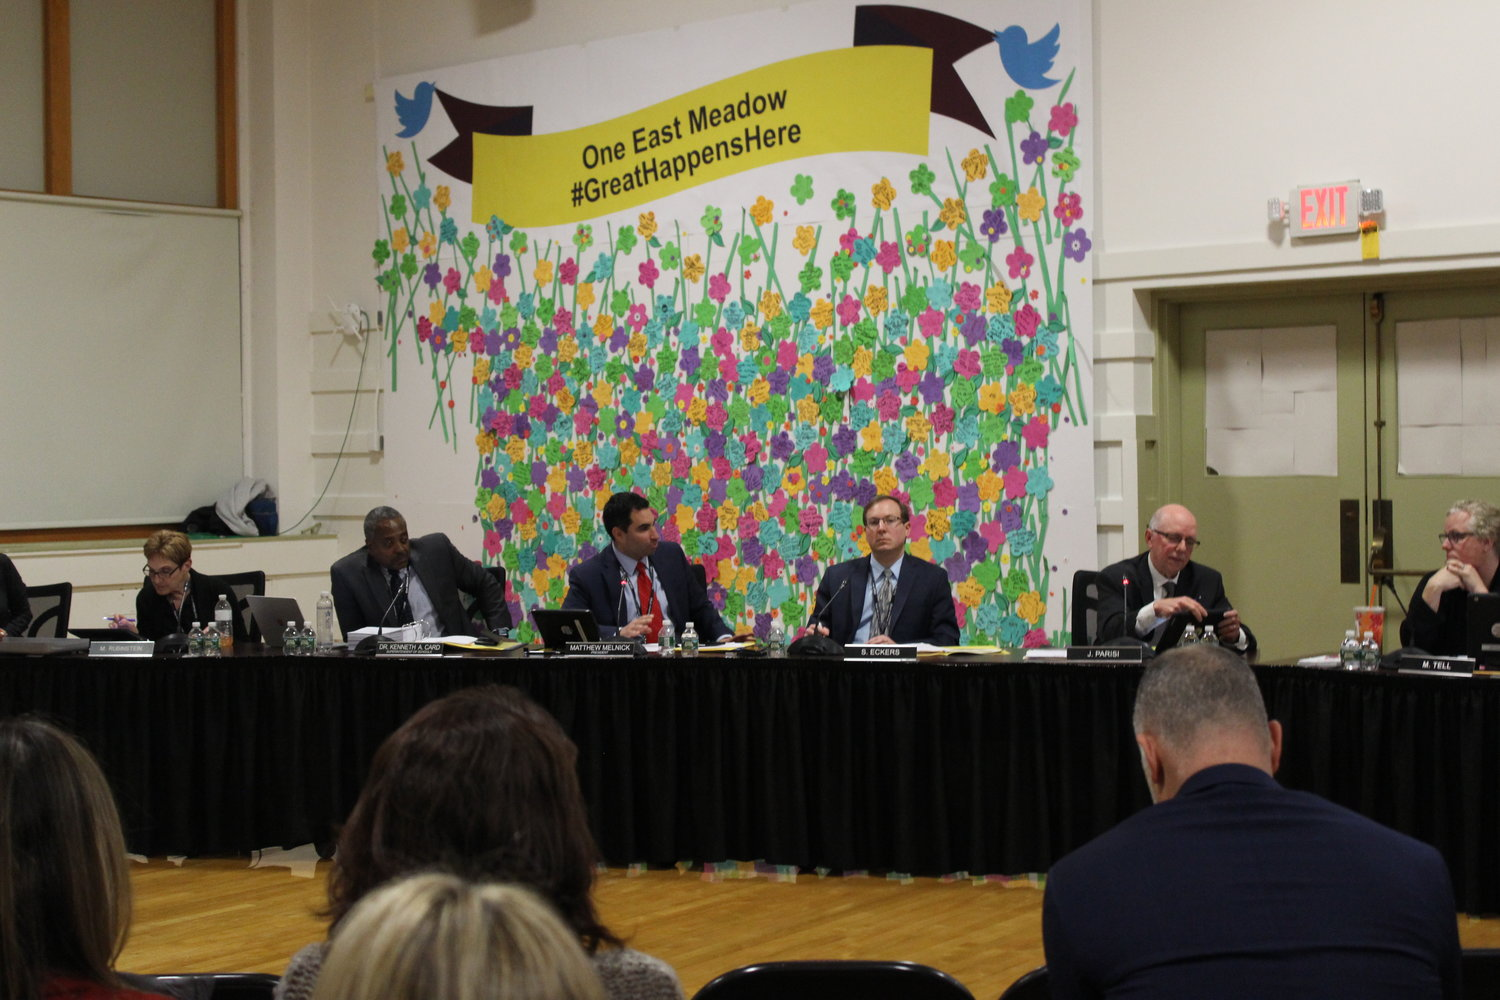 The East Meadow School District Board of Education recently outlined its 2019-20 budget proposal, which funds several infrastructure improvements, enhanced districtwide security measures and more mental health education.